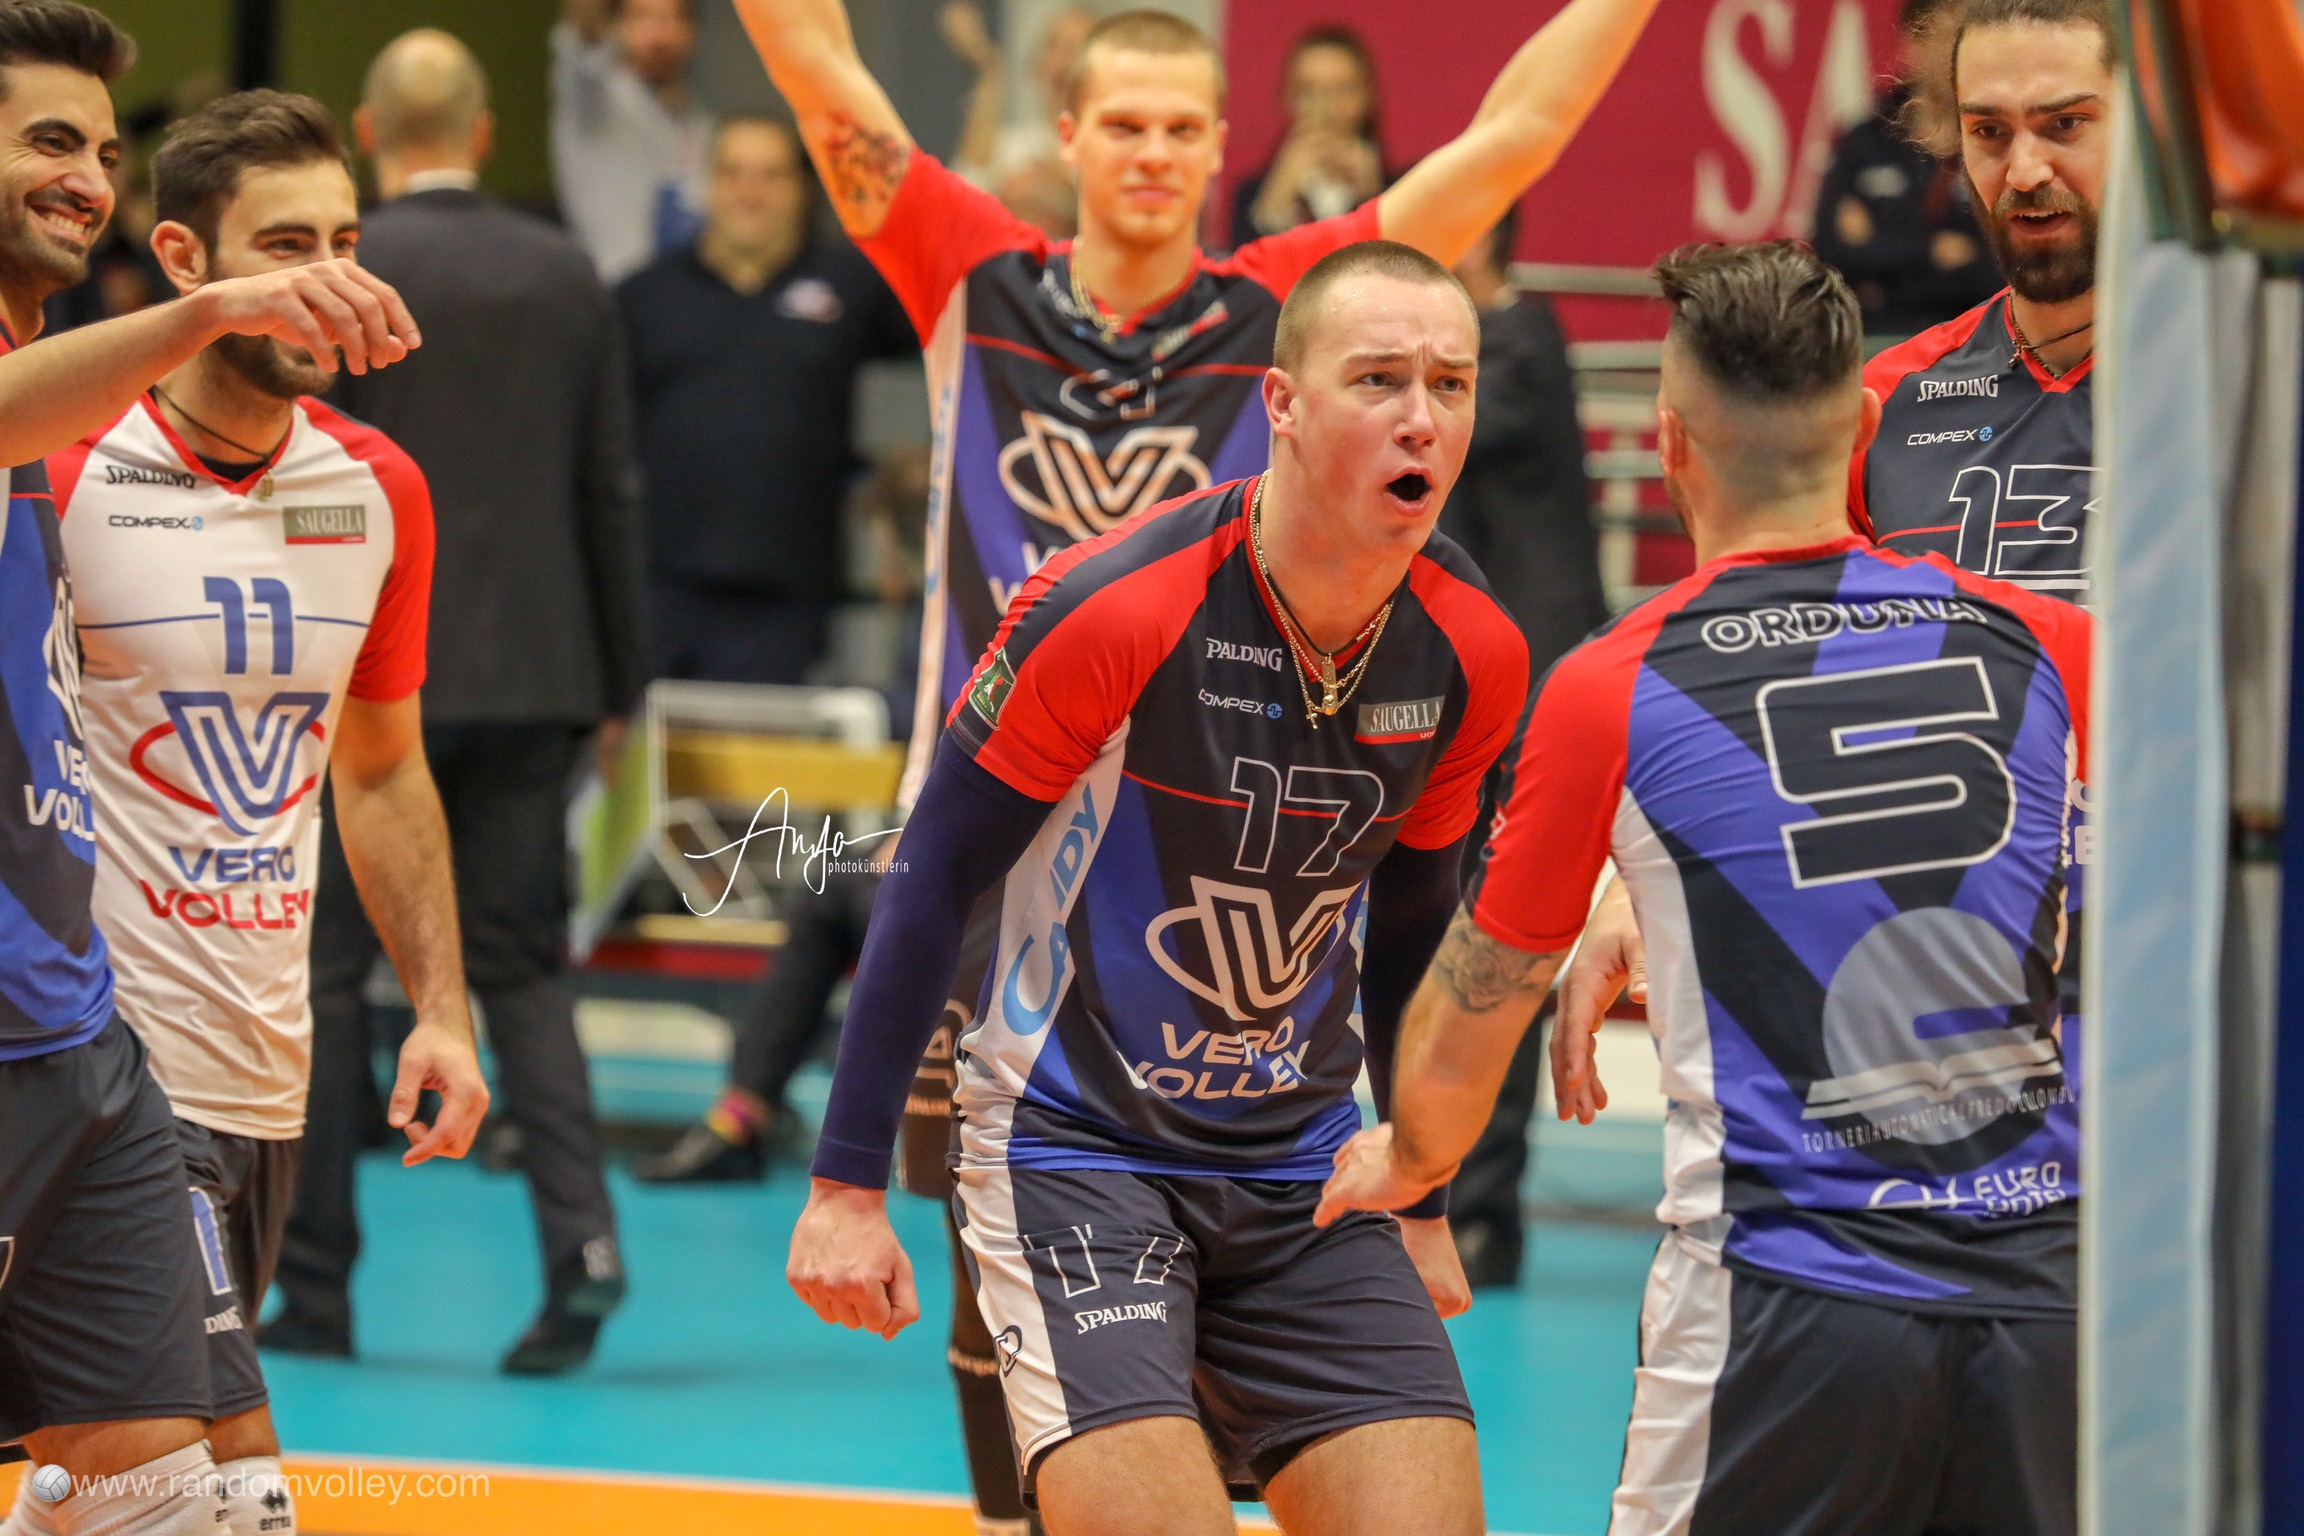 #Confirmations: Oleg Plotnytskyi is staying in Vero Volley Monza!